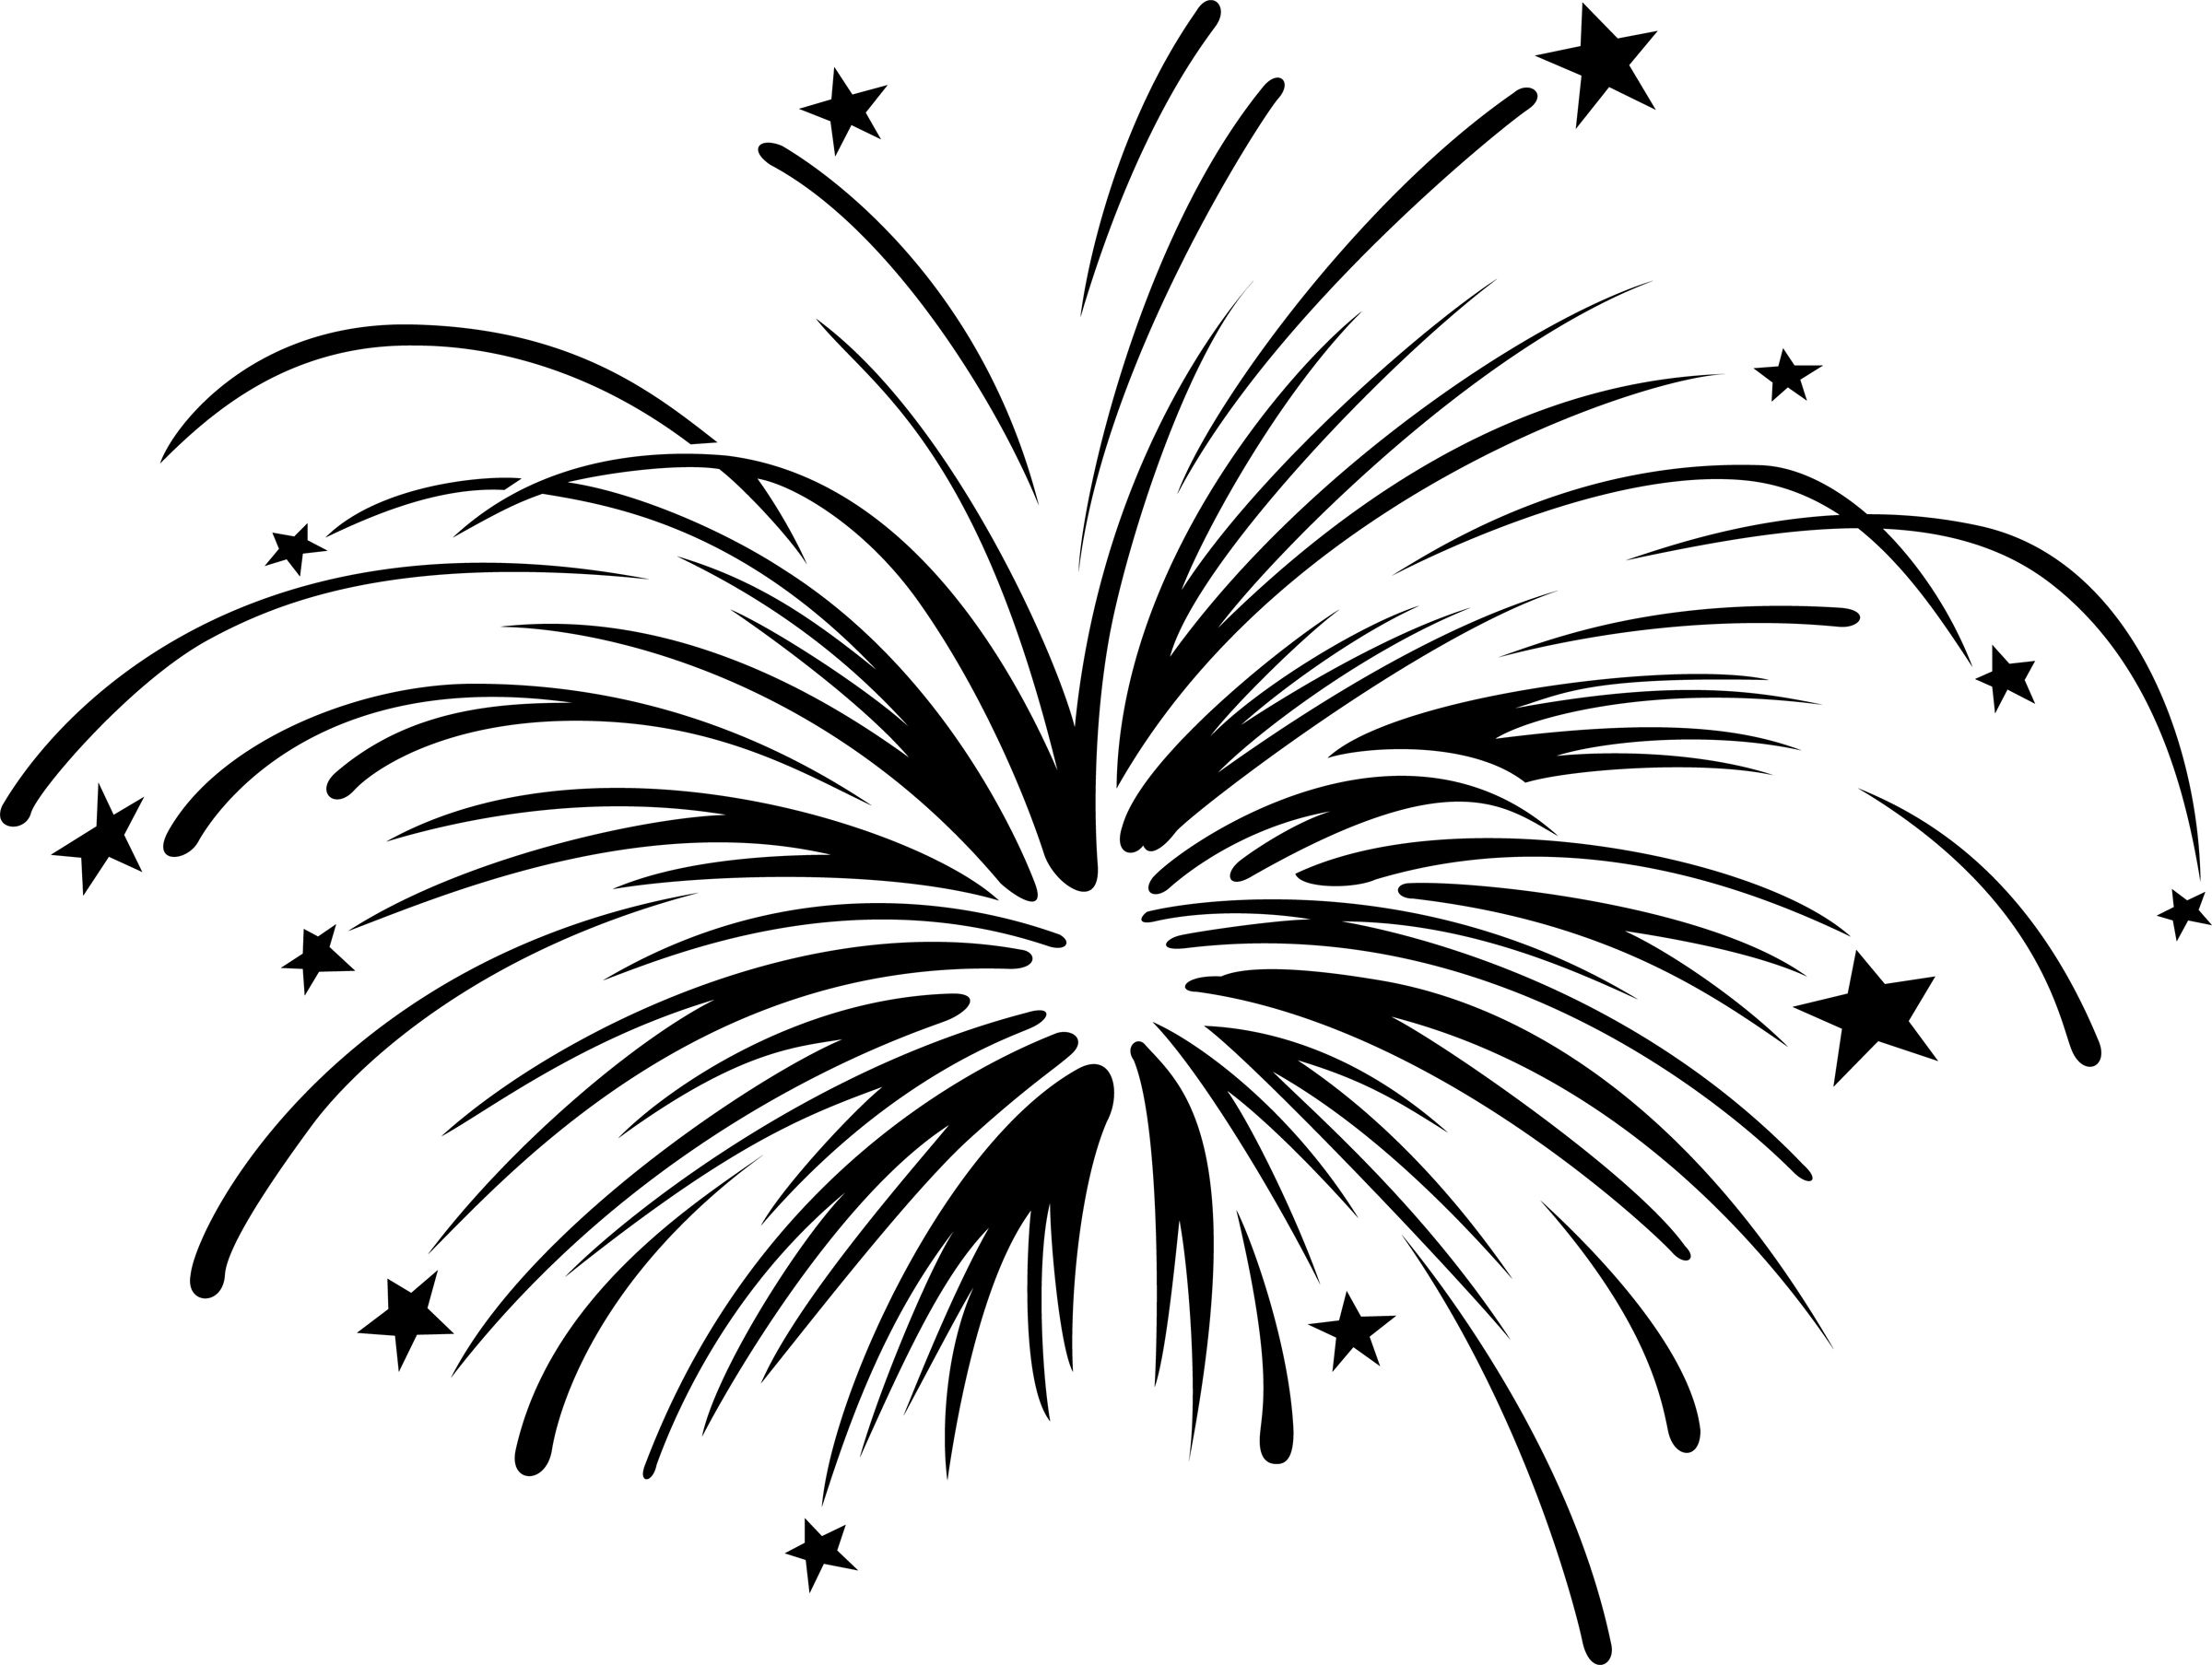 fireworks clipart with animation clipart panda free clipart rh pinterest com clip art fireworks free clip art fireworks with black background